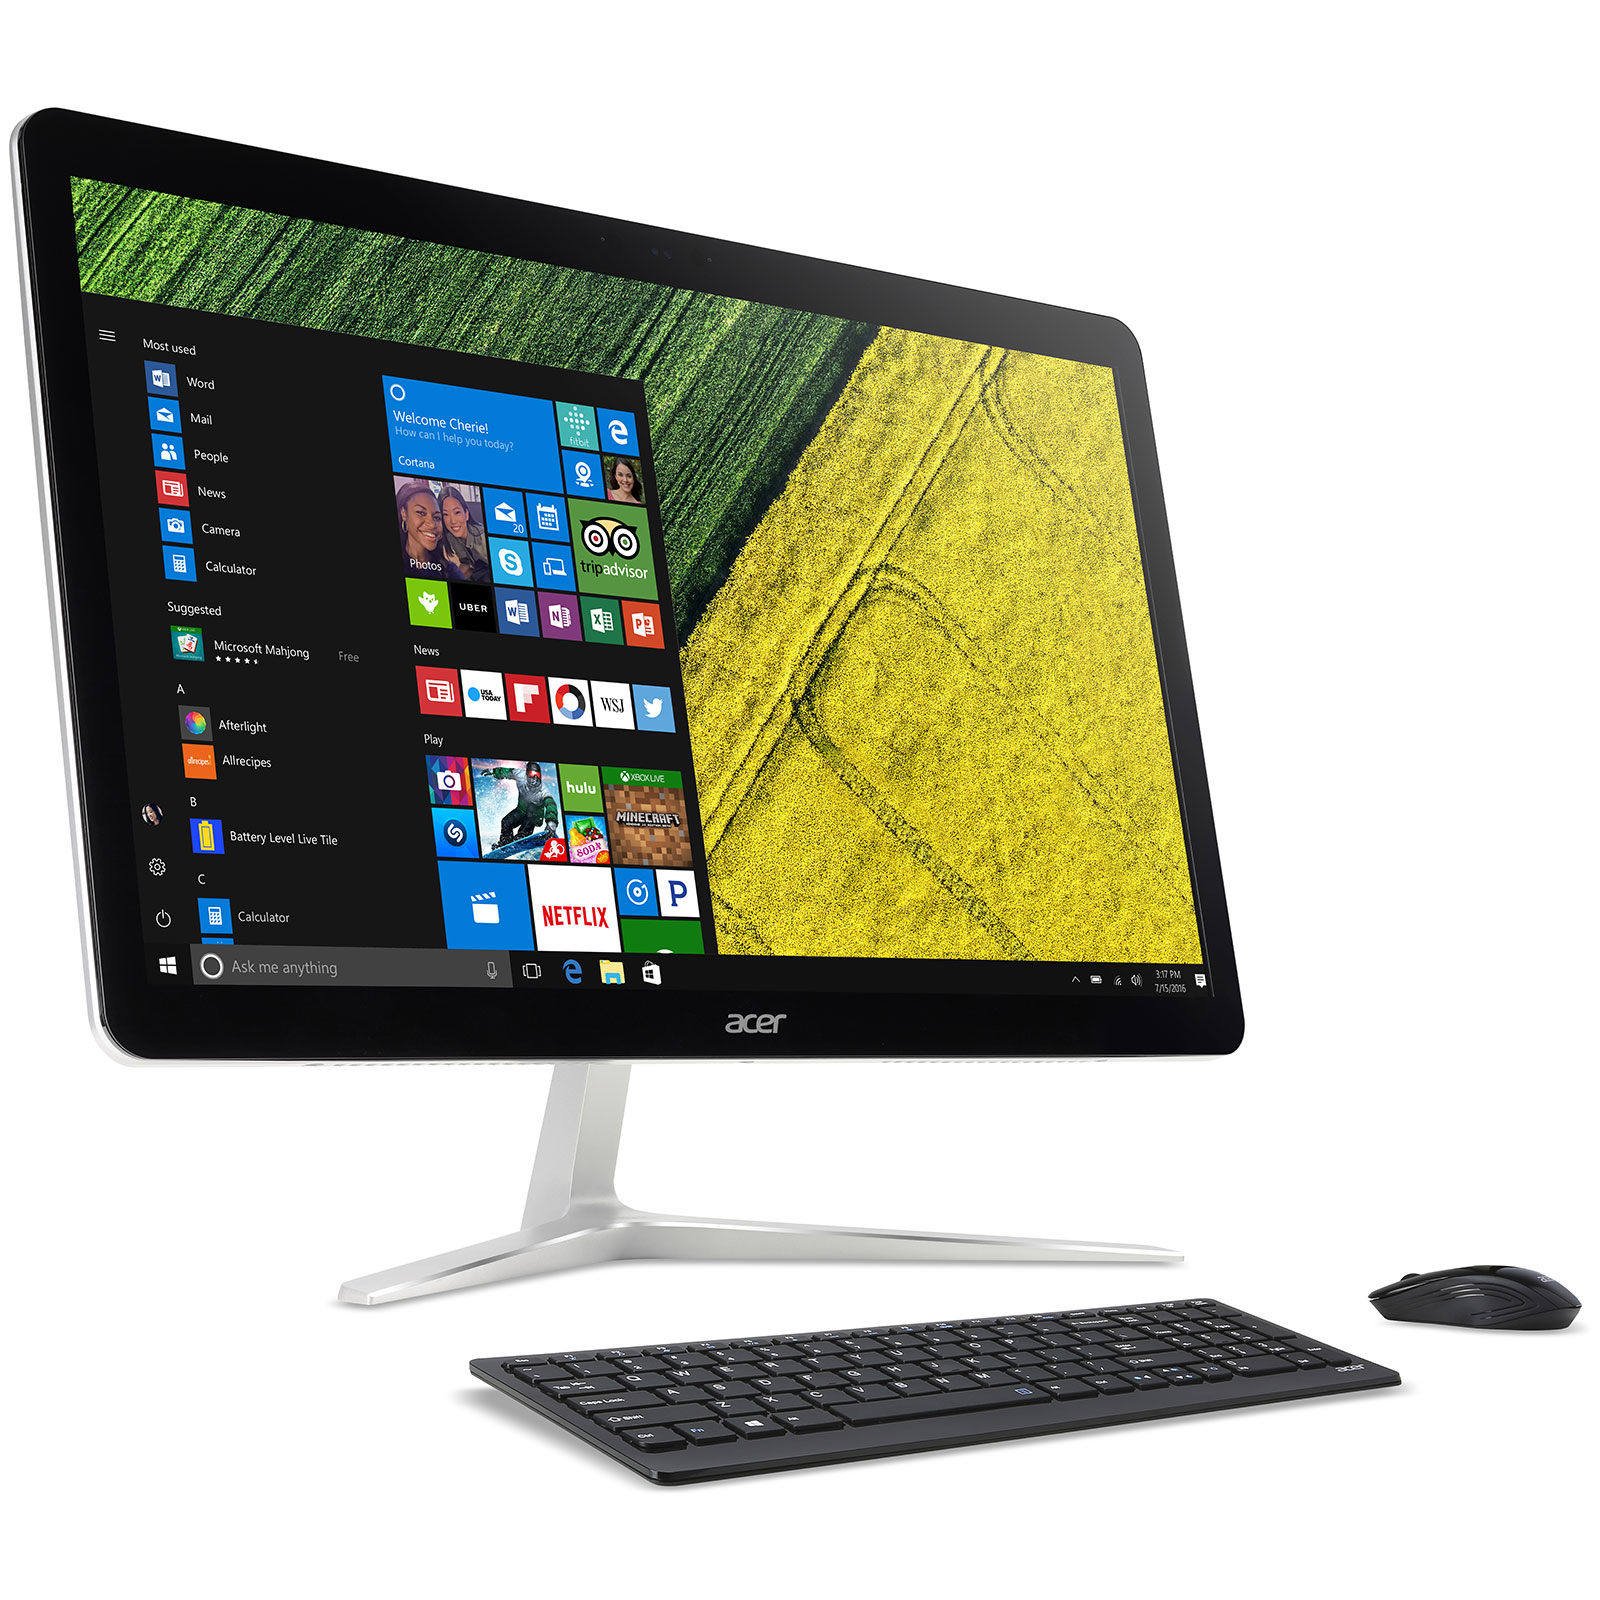 acer aspire u27 880 dq pc de bureau acer sur. Black Bedroom Furniture Sets. Home Design Ideas